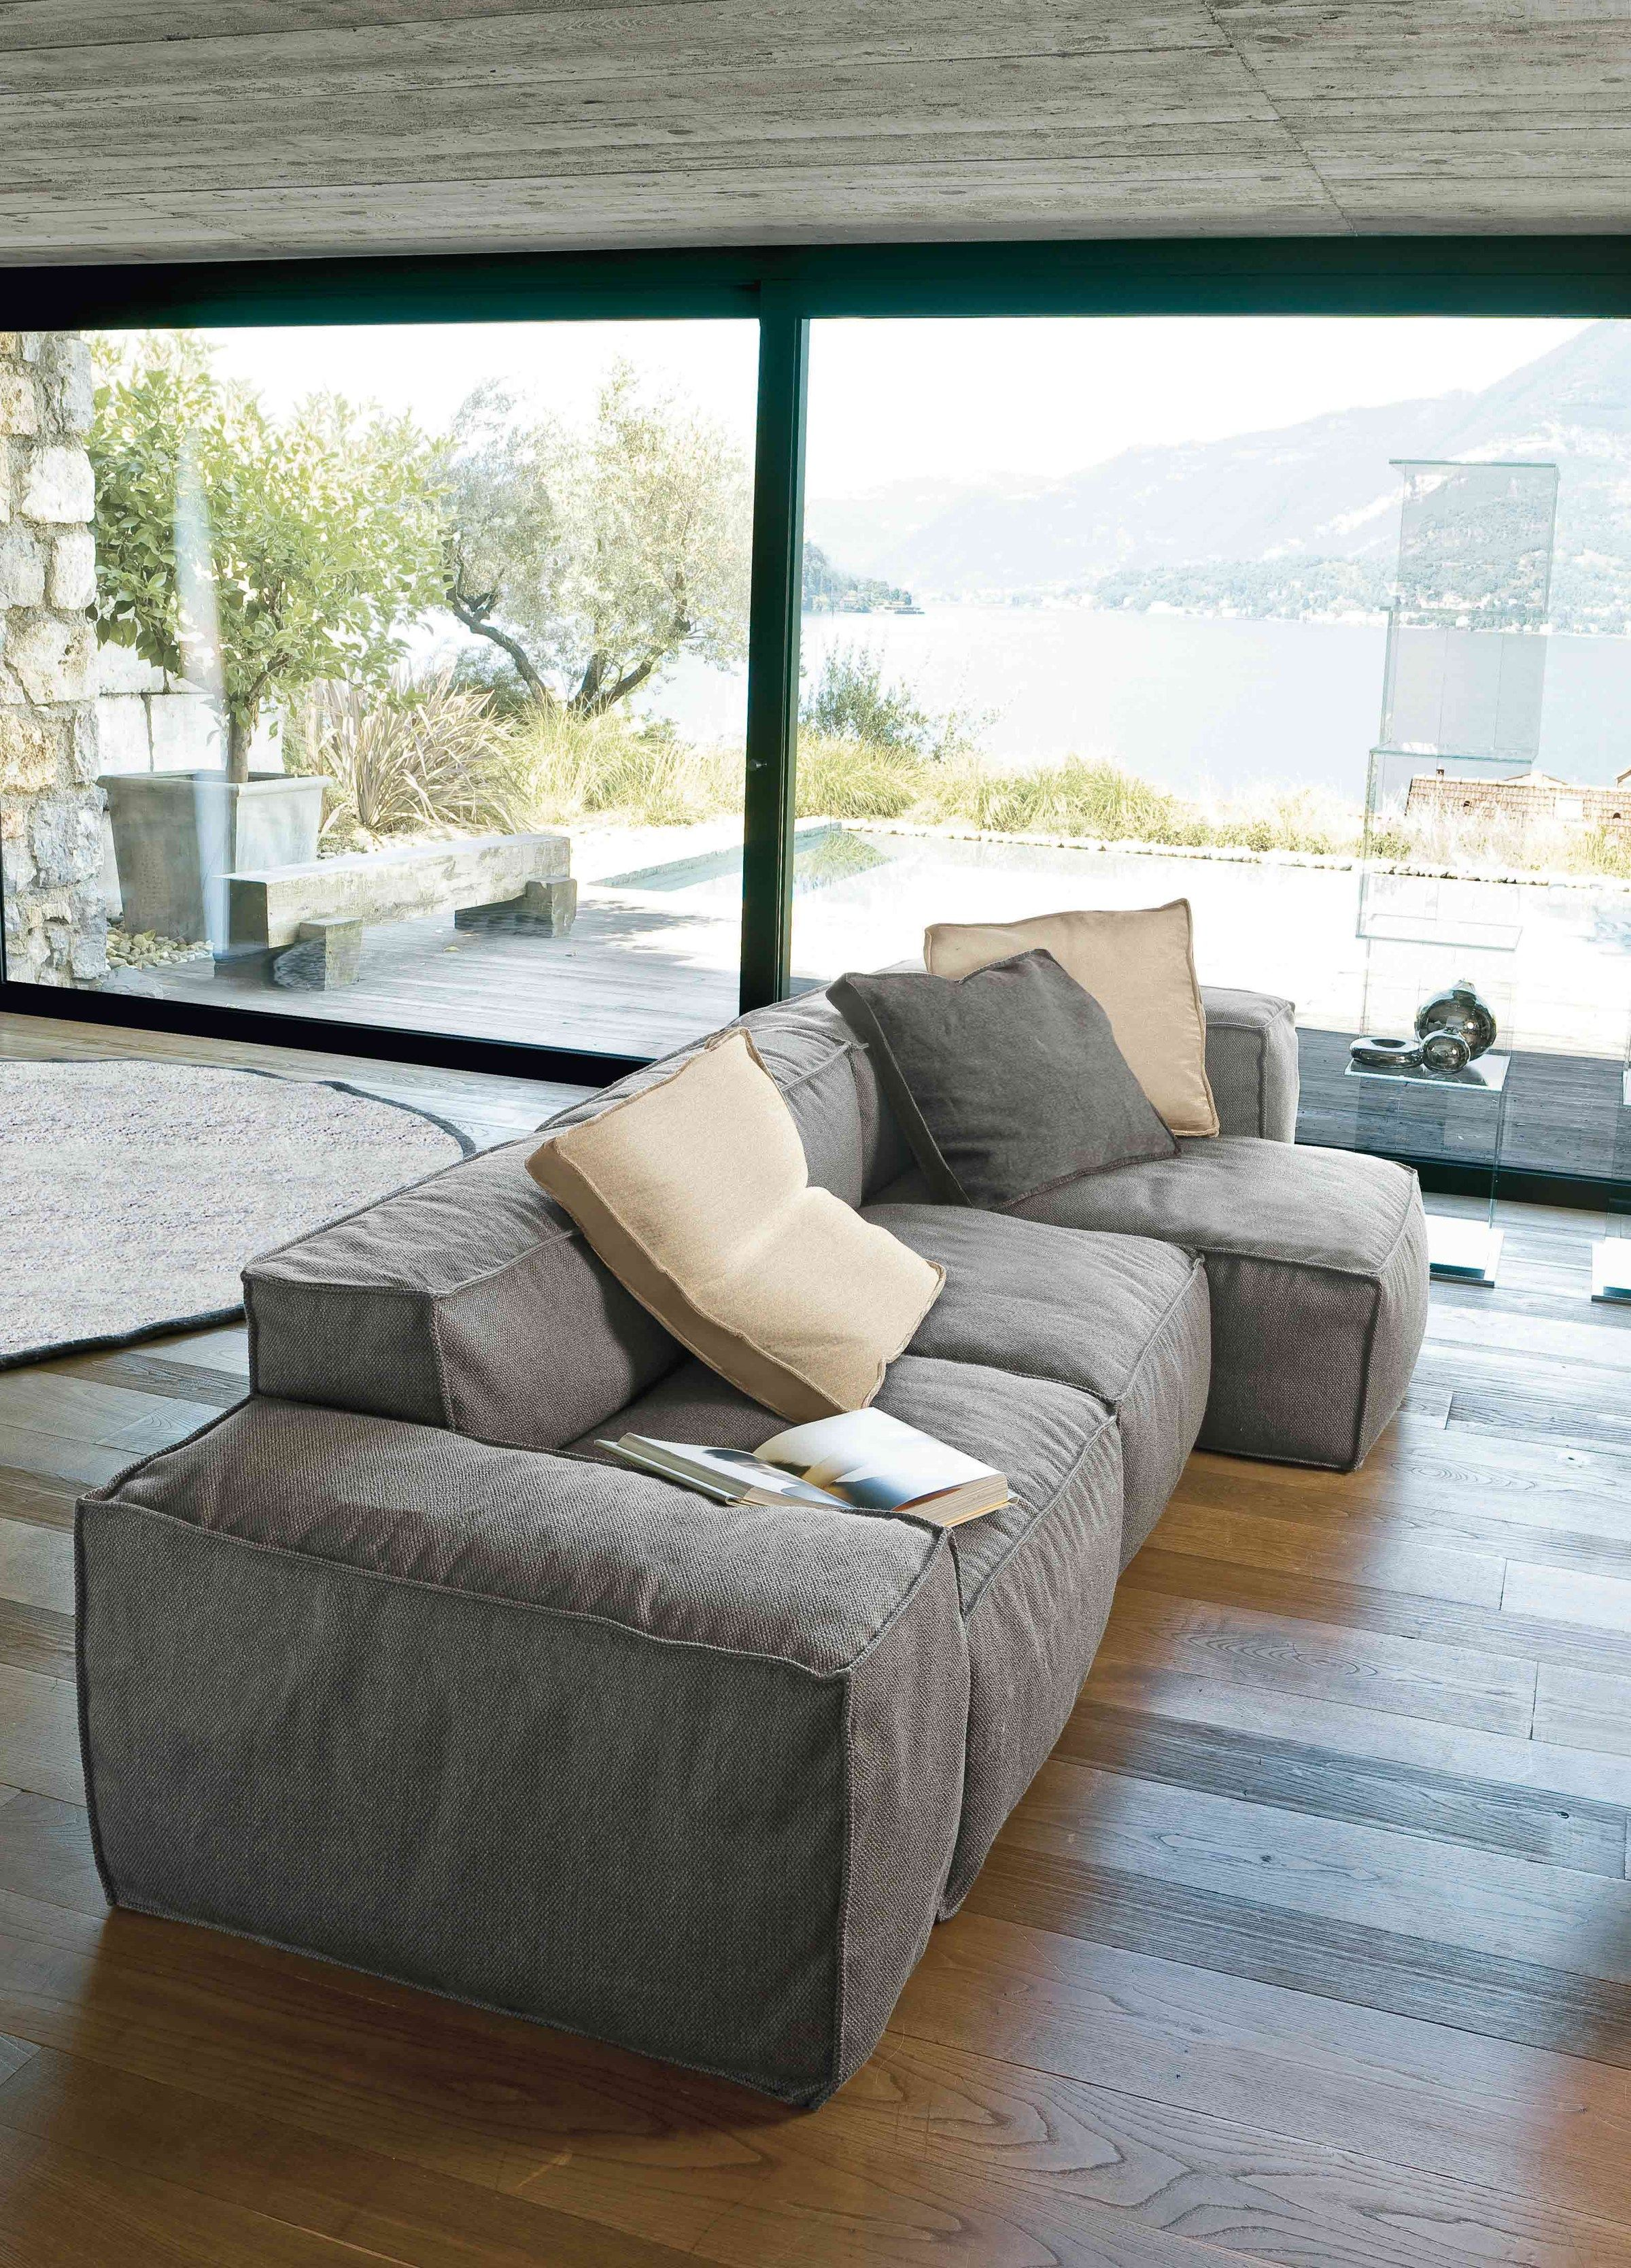 Sectional upholstered sofa PEANUT Peanut Collection by bonaldo